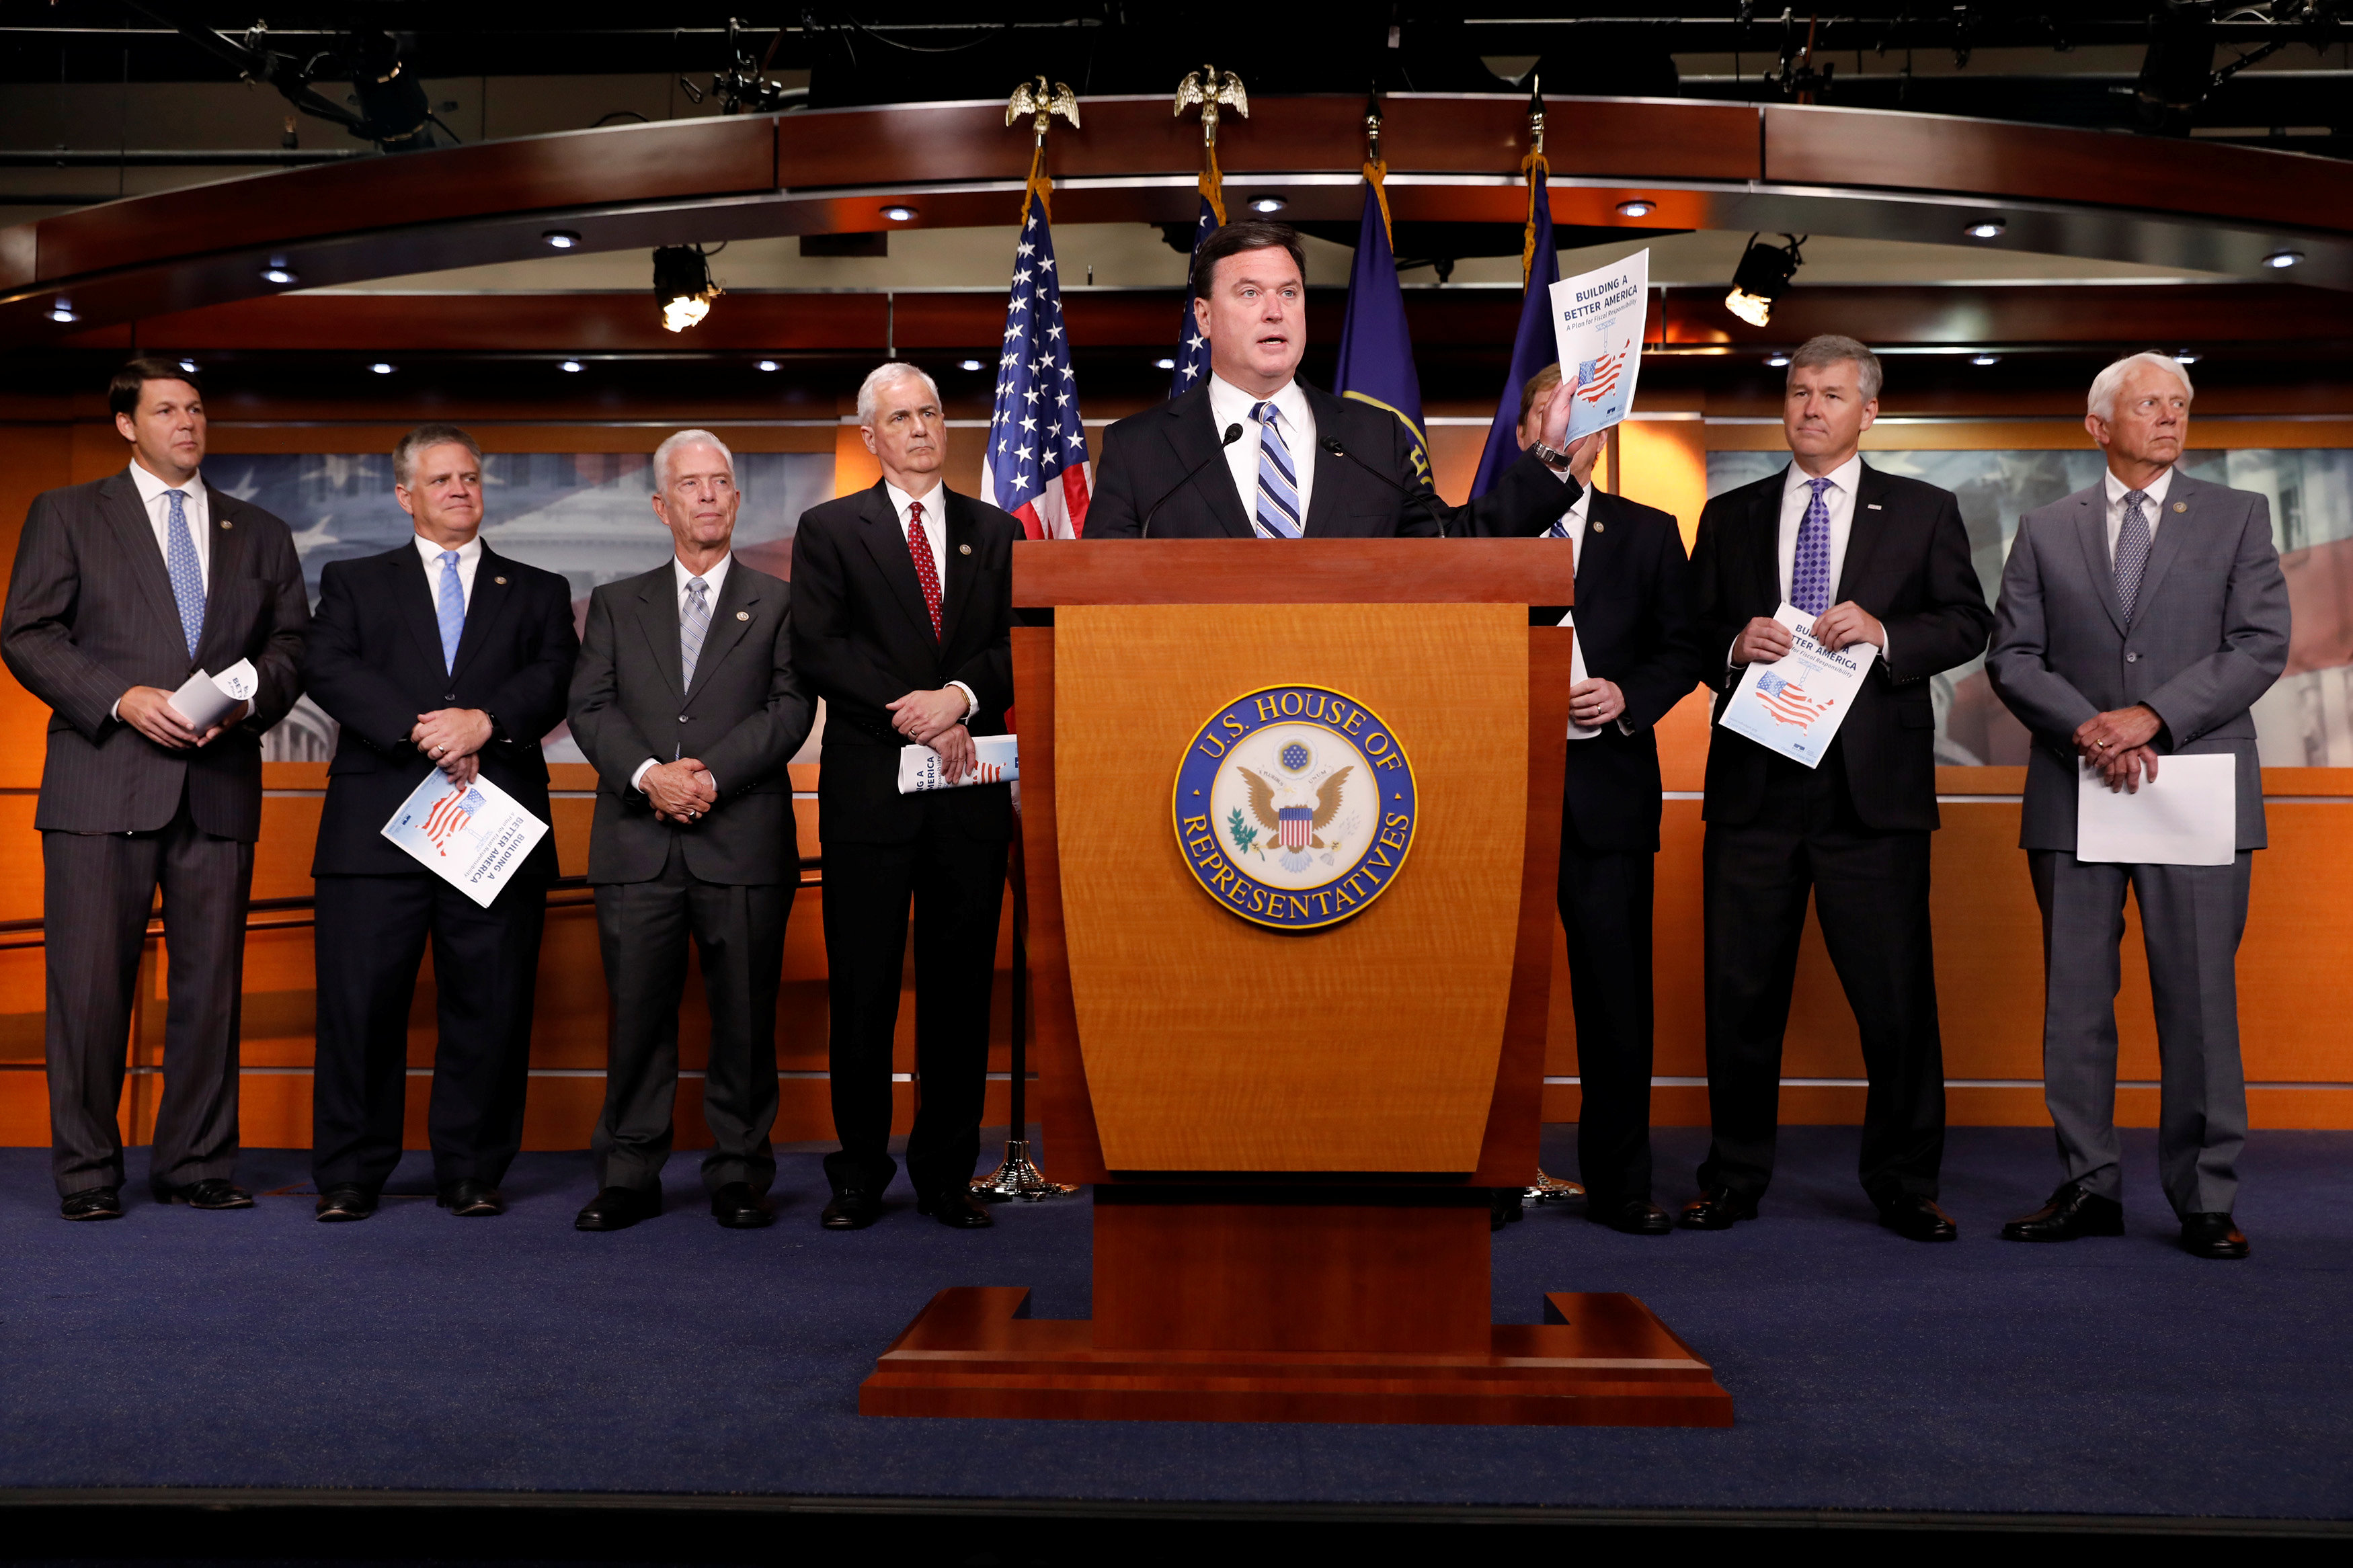 Rep. Todd Rokita (R-IN) announces the 2018 budget blueprint during a press conference on Capitol Hill in Washington on July 18, 2017. (REUTERS/Aaron P. Bernstein)